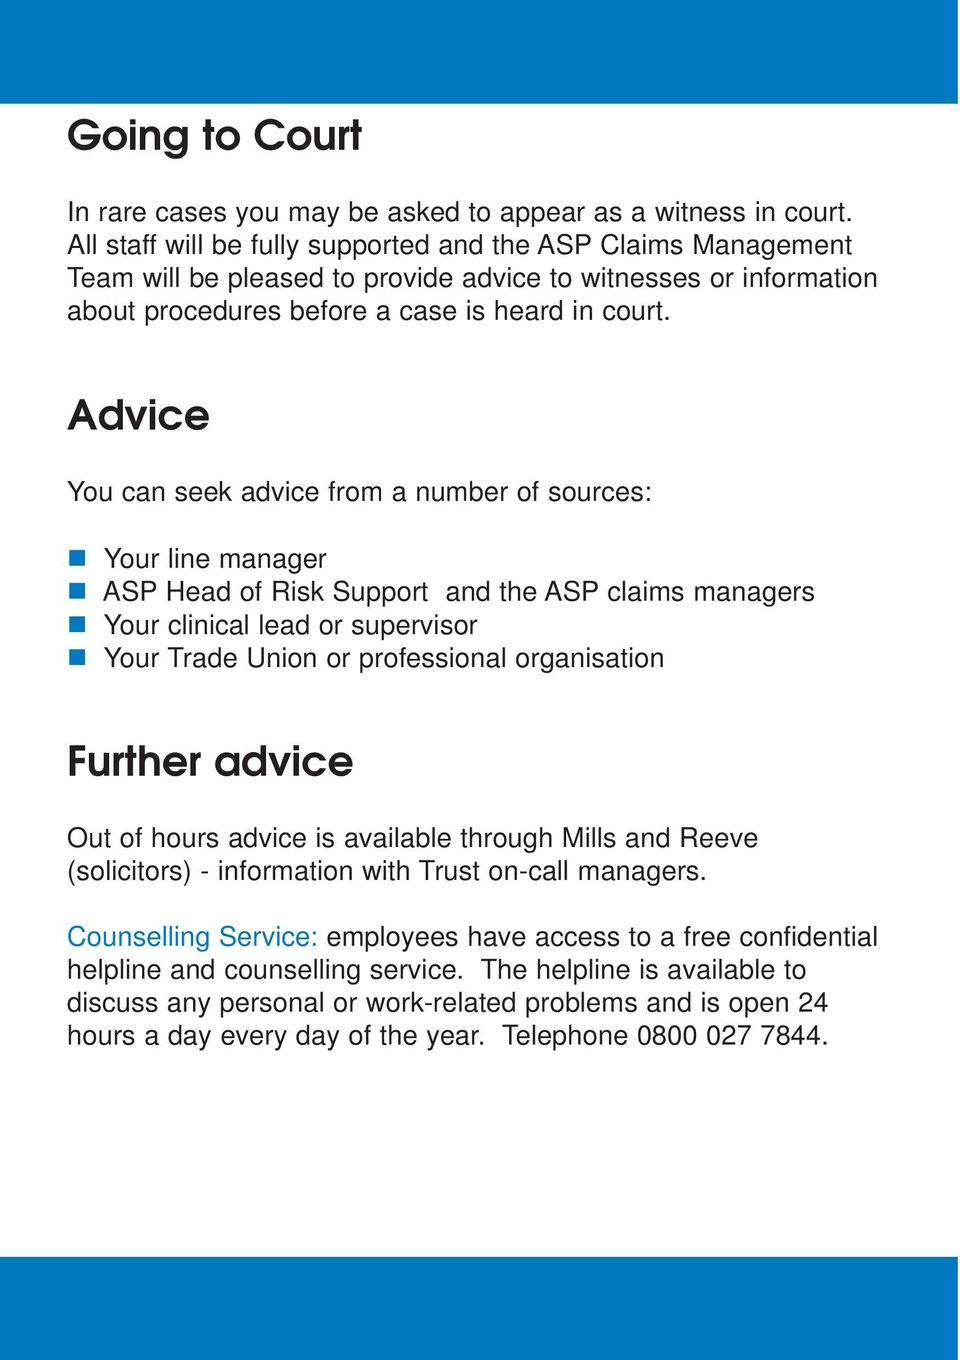 Advice You can seek advice from a number of sources: Your line manager ASP Head of Risk Support and the ASP claims managers Your clinical lead or supervisor Your Trade Union or professional